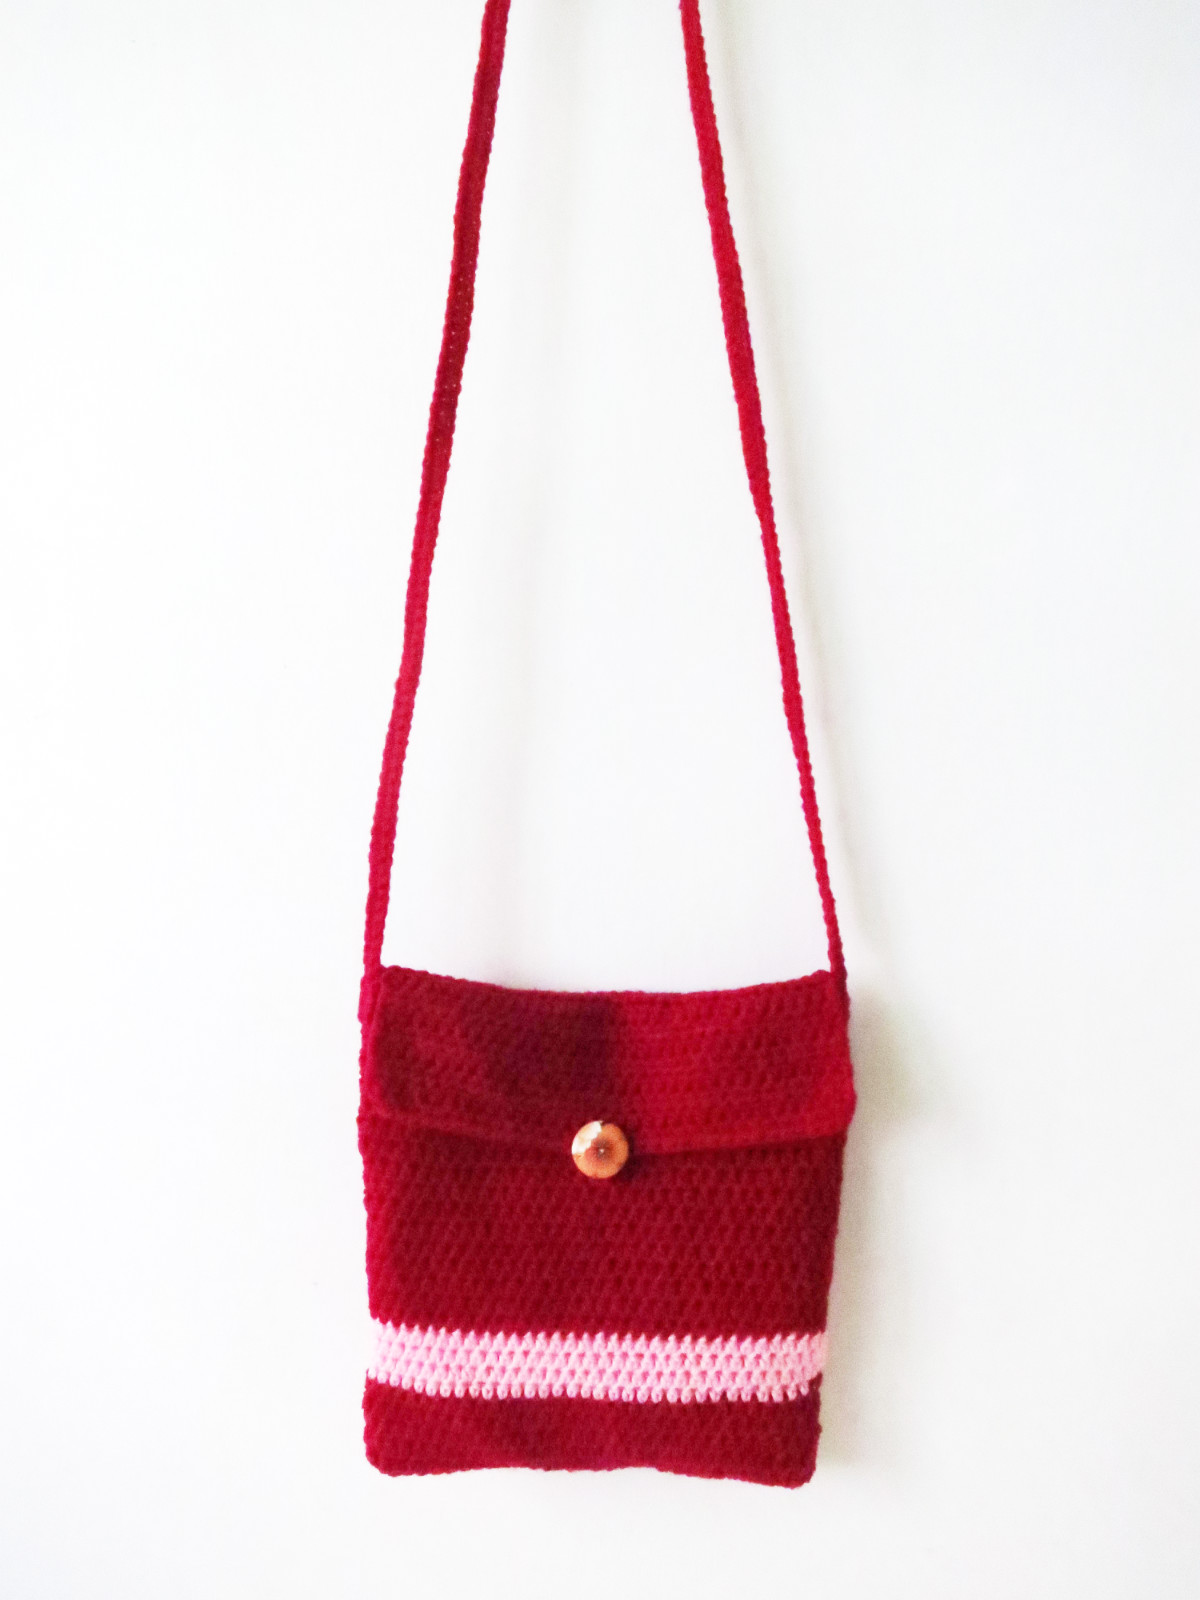 Crochet Sling Bag Pattern : To attach the handles, I just threaded the yarn through a needle and ...